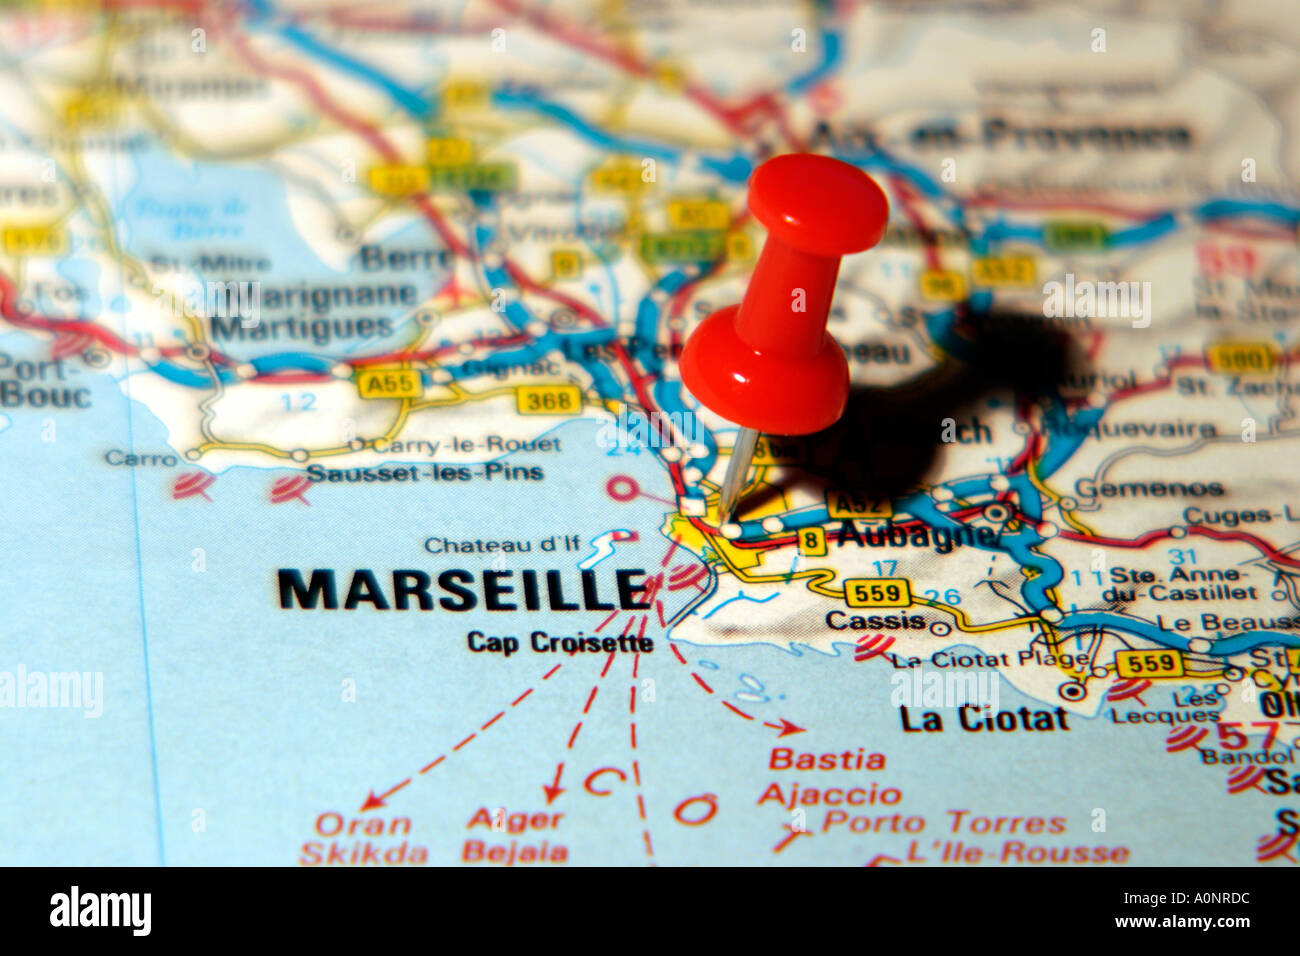 Map Pin Pointing To Marseilles France On A Road Map Stock Photo